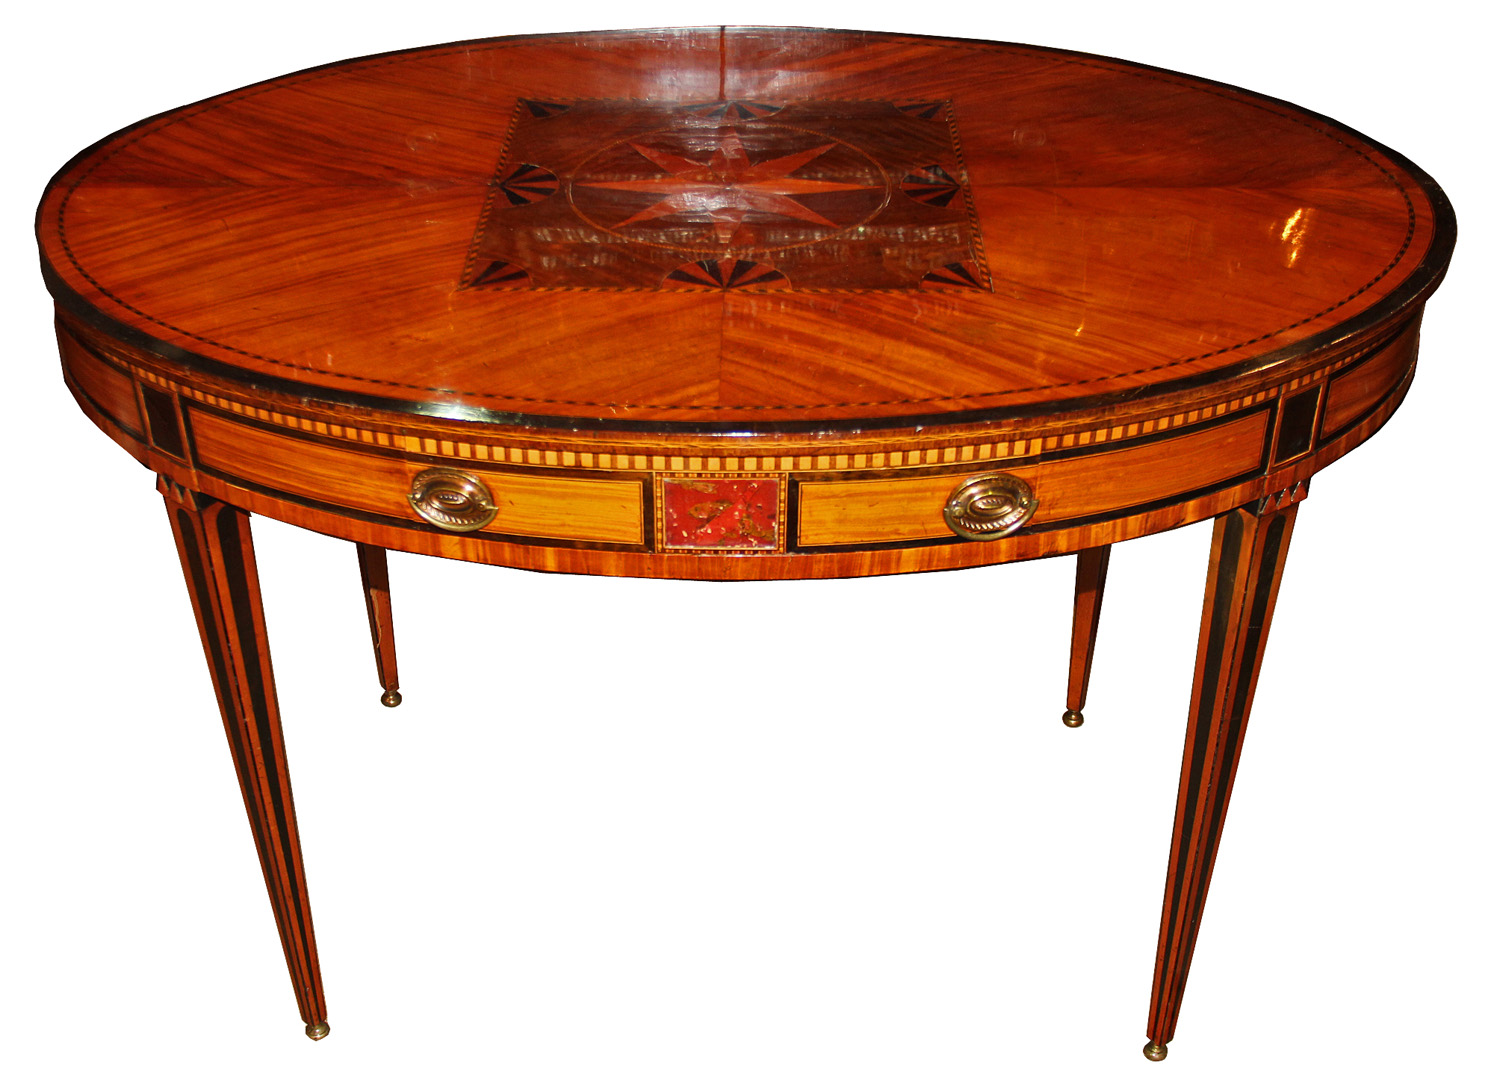 A 19th Century Satinwood, Elmwood and Ebony English Parquetry Side or Center Table No. 4464